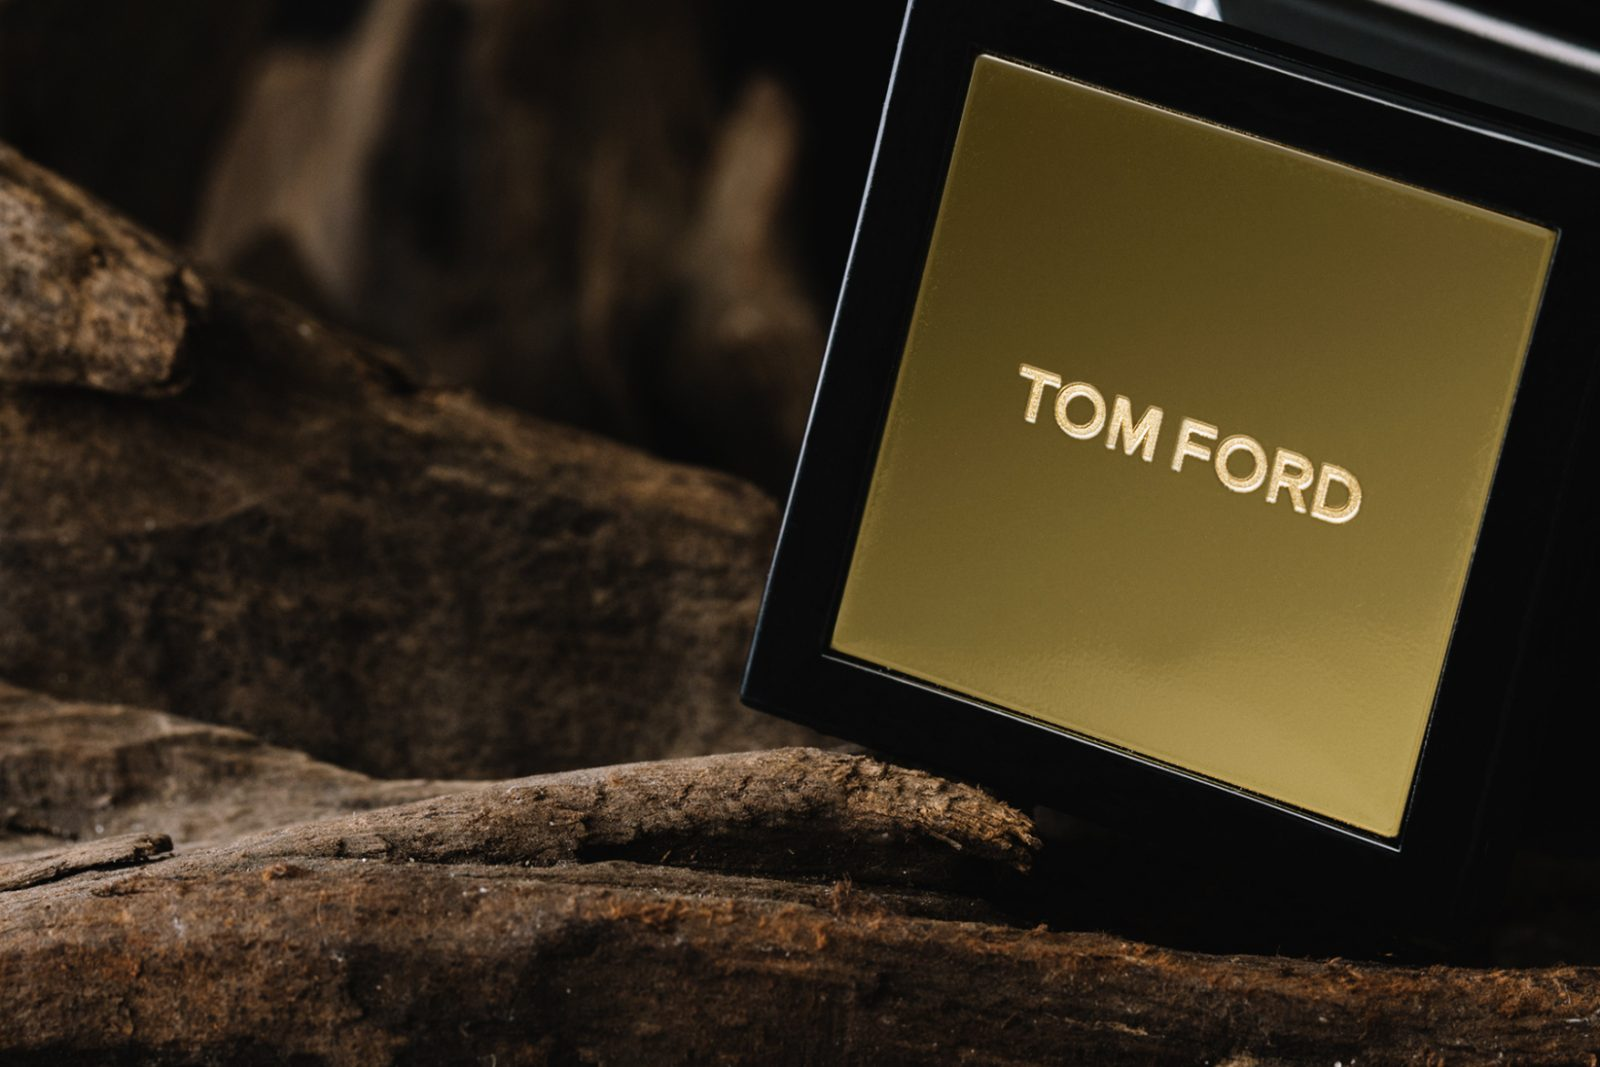 tom ford private blend les extraits vertsrivate blend les extraits verts 2 e1481015441854